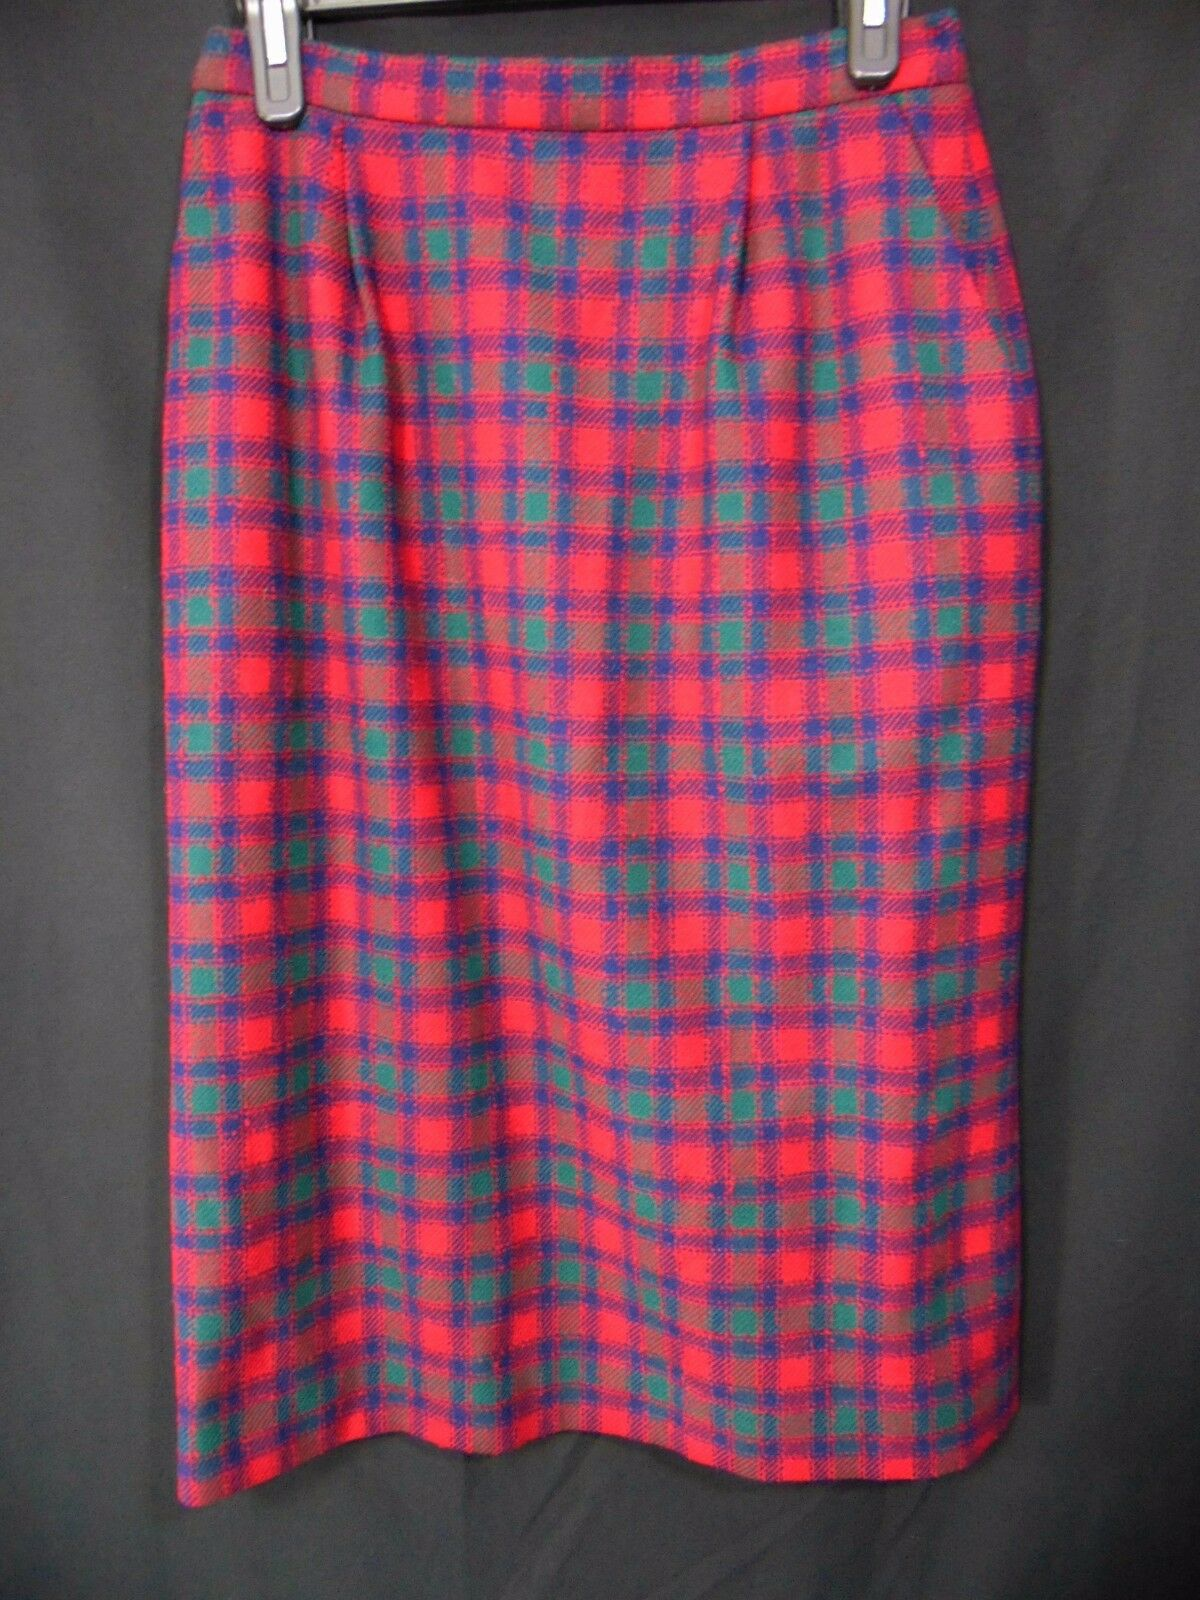 PENDLETON Recent Women's Classic Straight Skirt Sz 8 Plaid Lined Red Green bluee